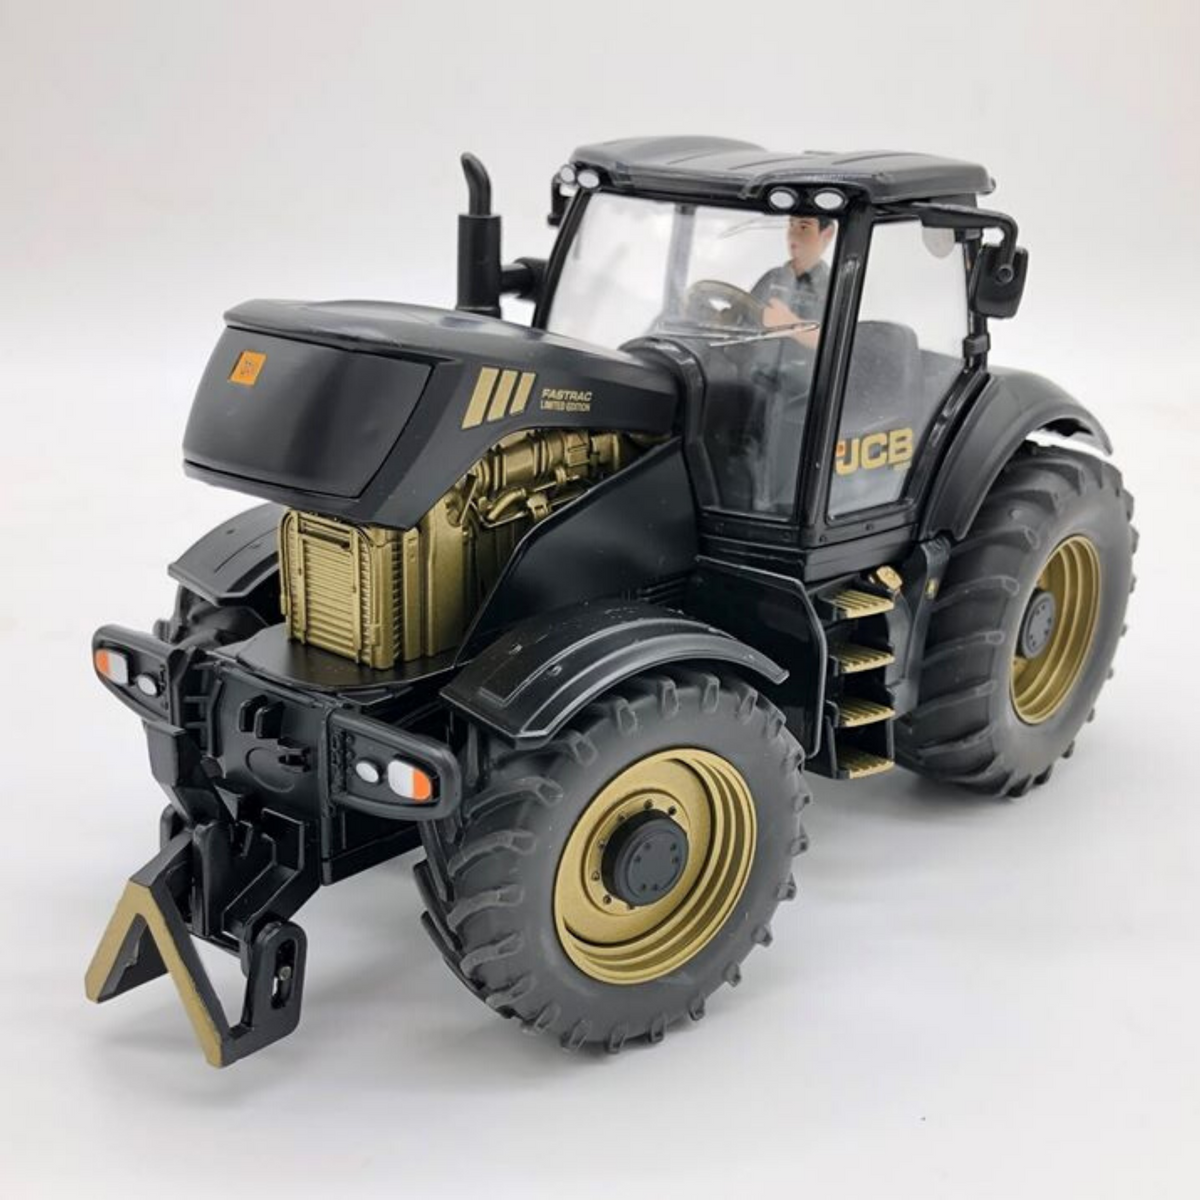 Gold JCB 8250 Tractor with Driver